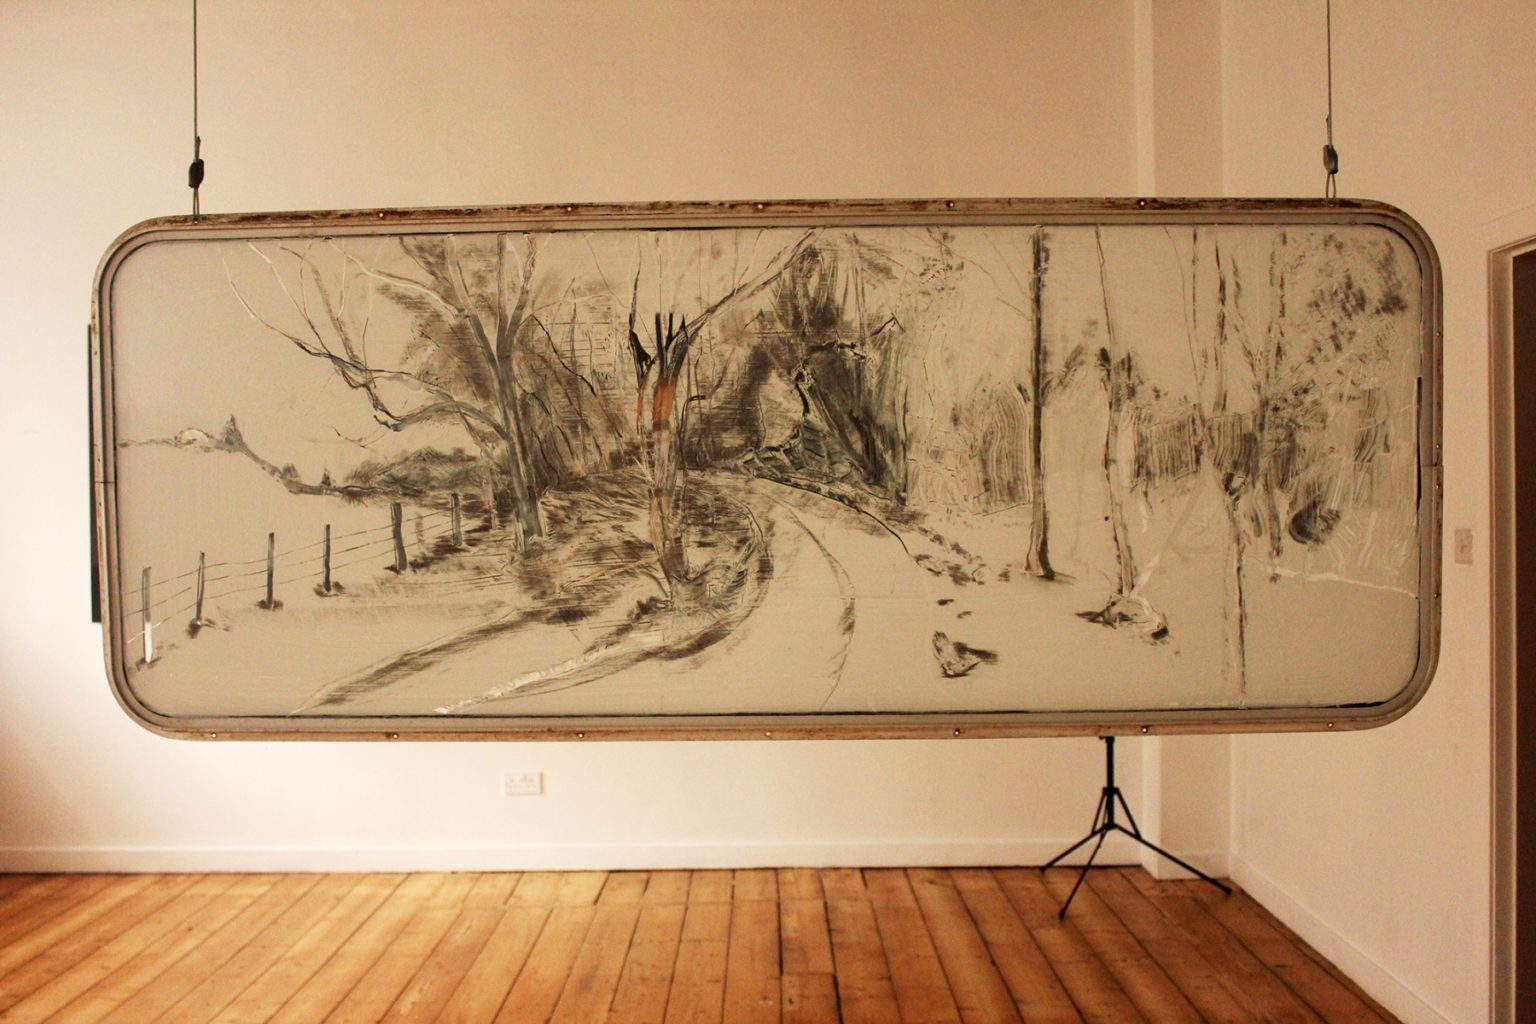 What is the light you have lost?, Sgraffito drawing on caravan window, 80cm x 200cm, 2014